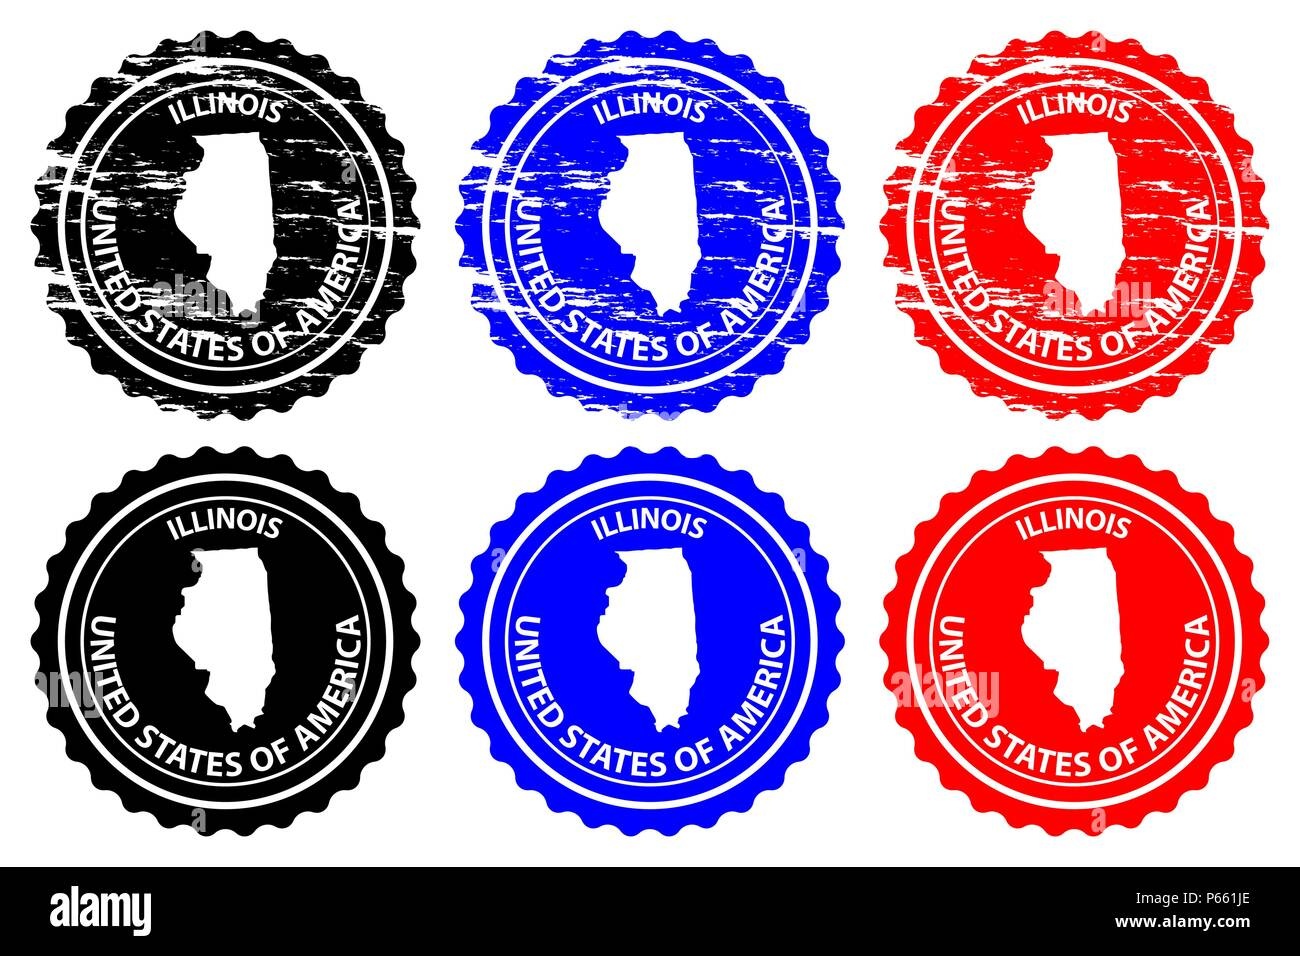 Illinois - rubber stamp - vector, Illinois (United States of America) map pattern - sticker - black, blue and red - Stock Vector